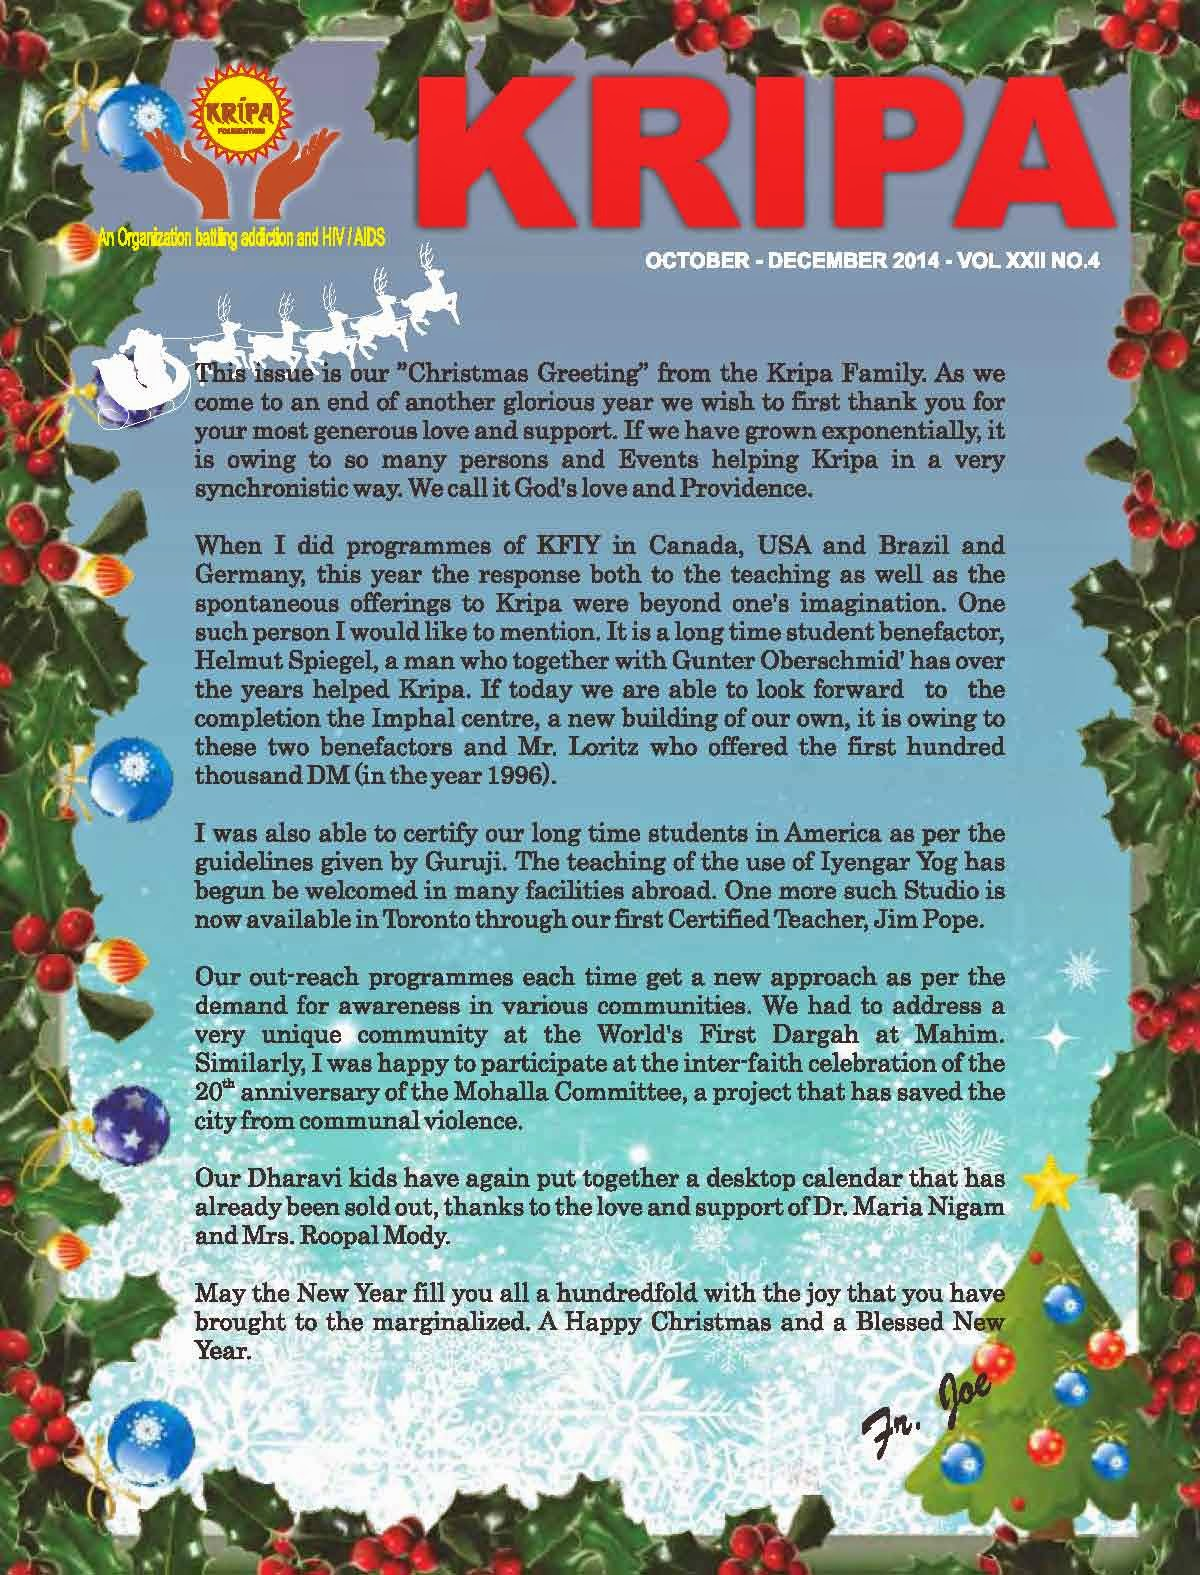 Kripa foundation india fr joes christmas greetings and wishes fr joes christmas greetings and wishes for the new year 2015 latest newsletter kristyandbryce Image collections